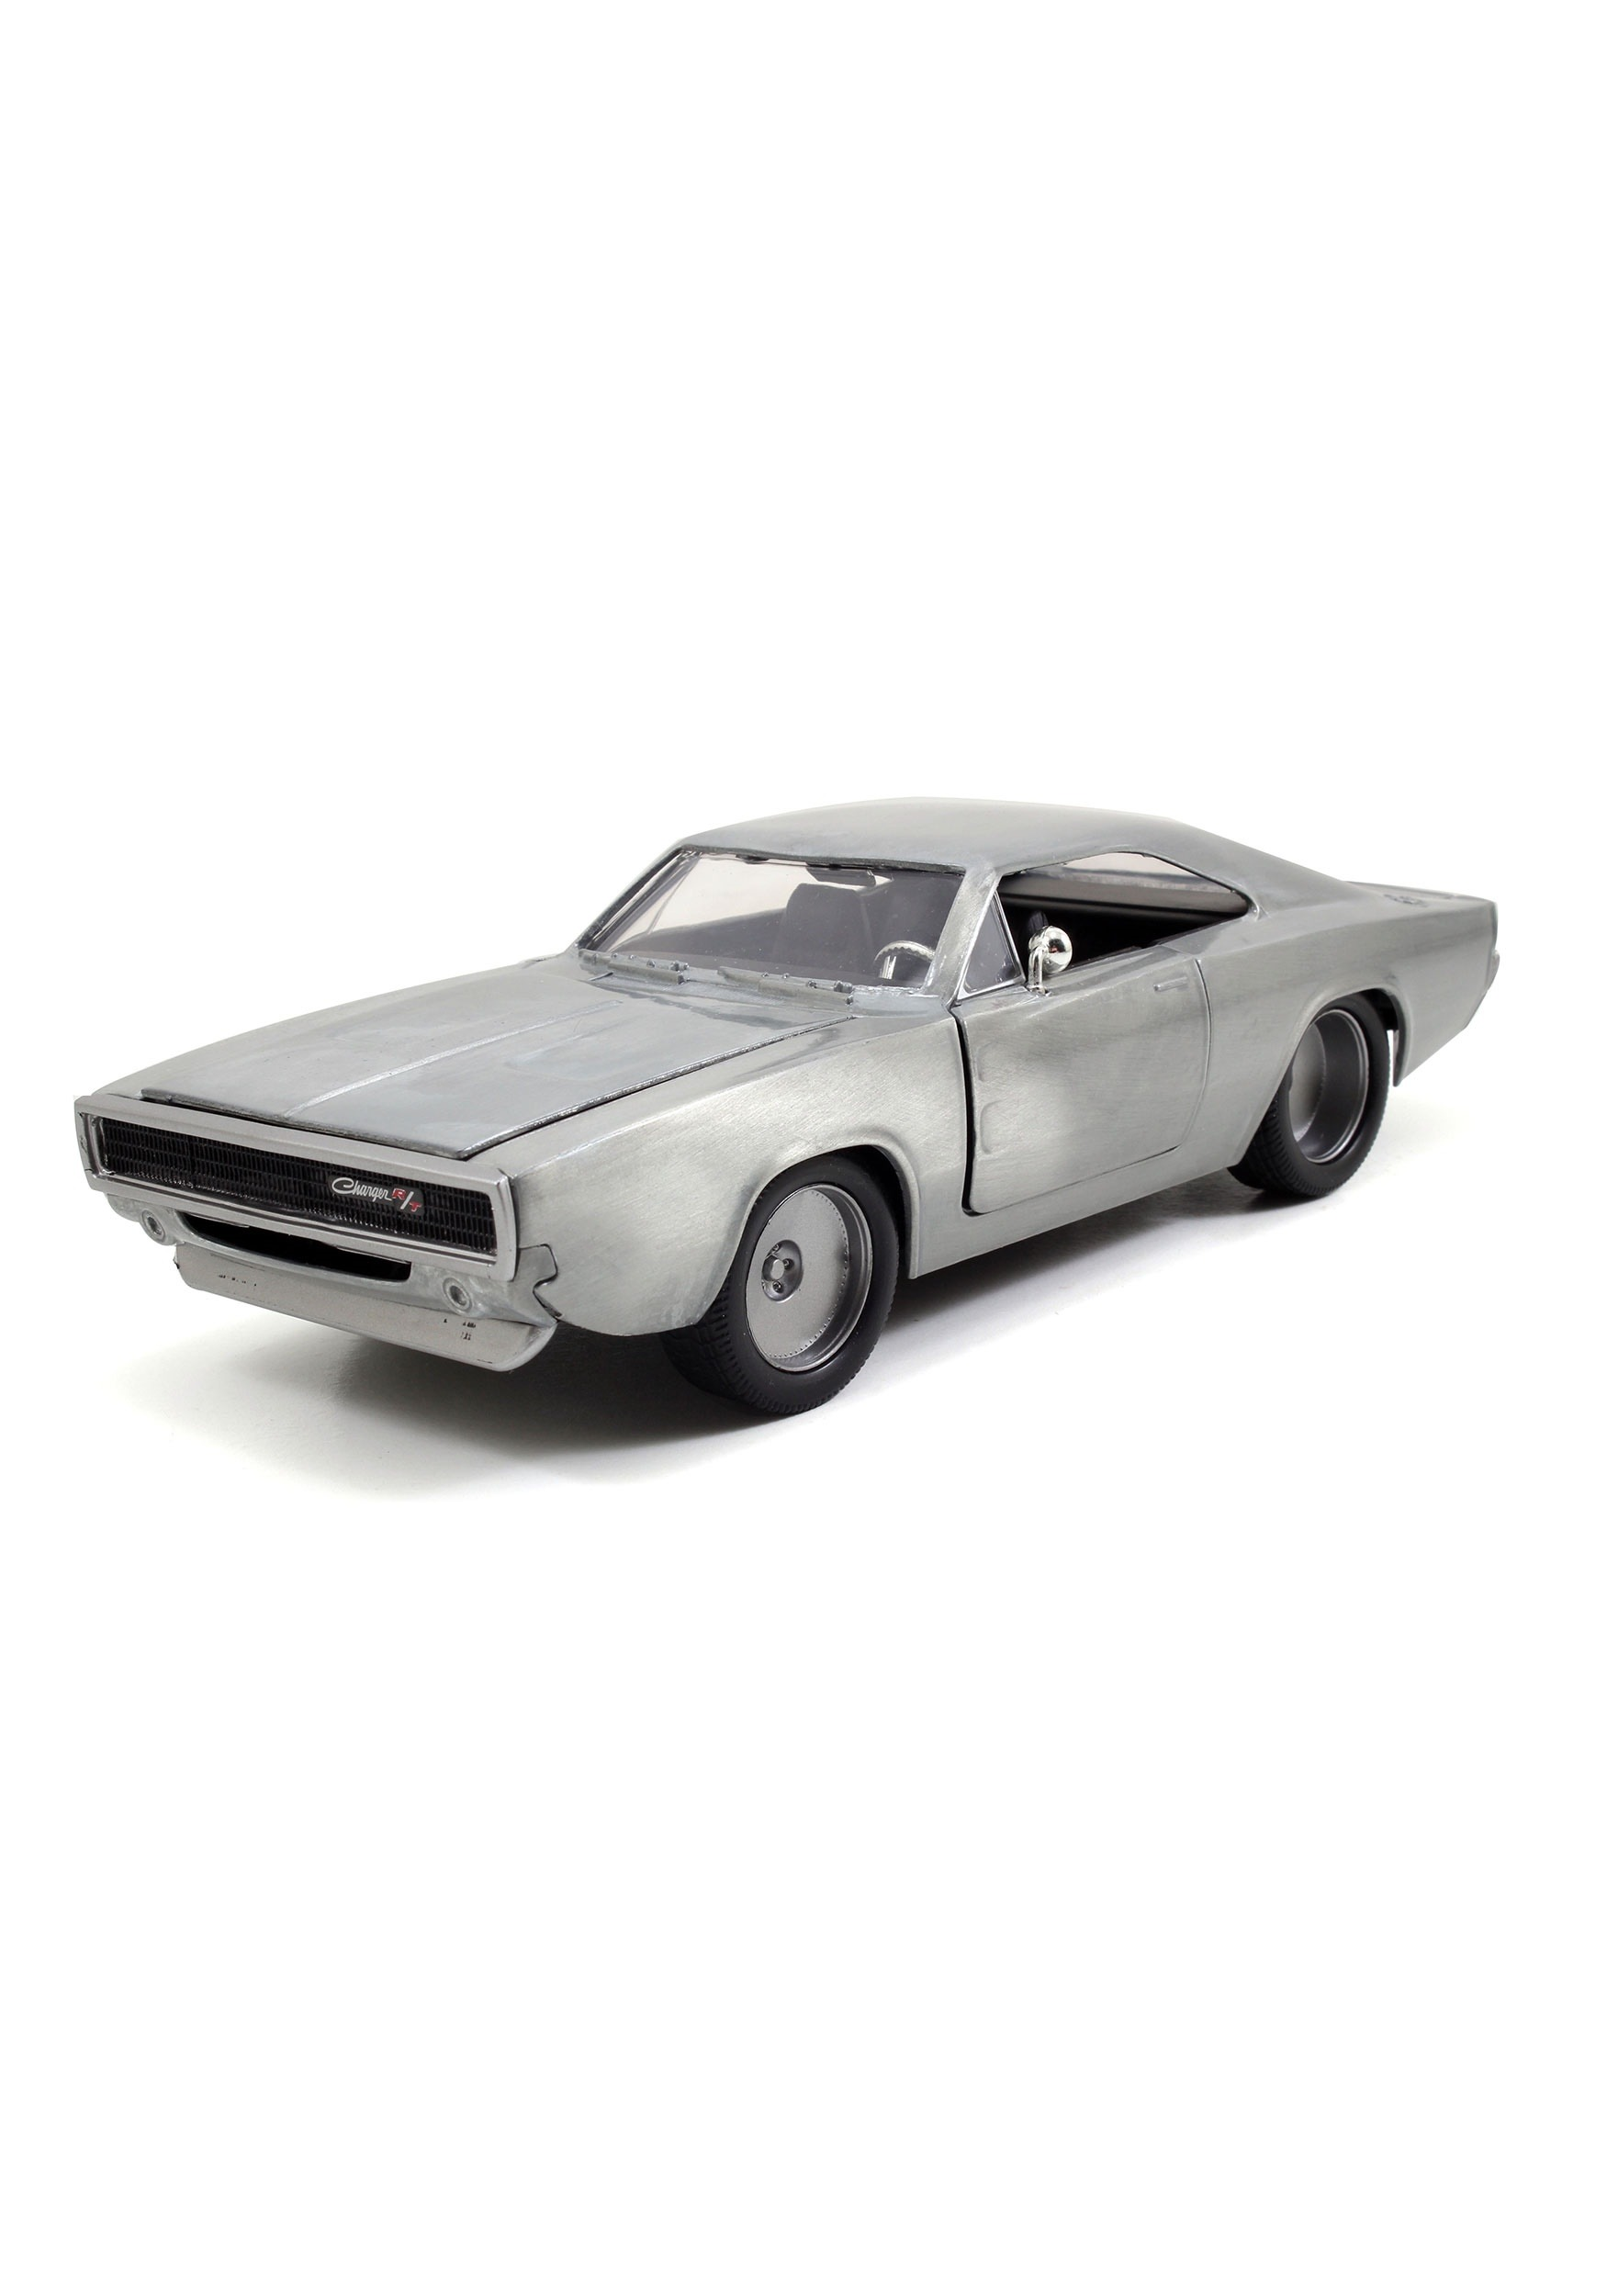 68 Rt Charger: Fast & The Furious '68 Dodge Charger R/T